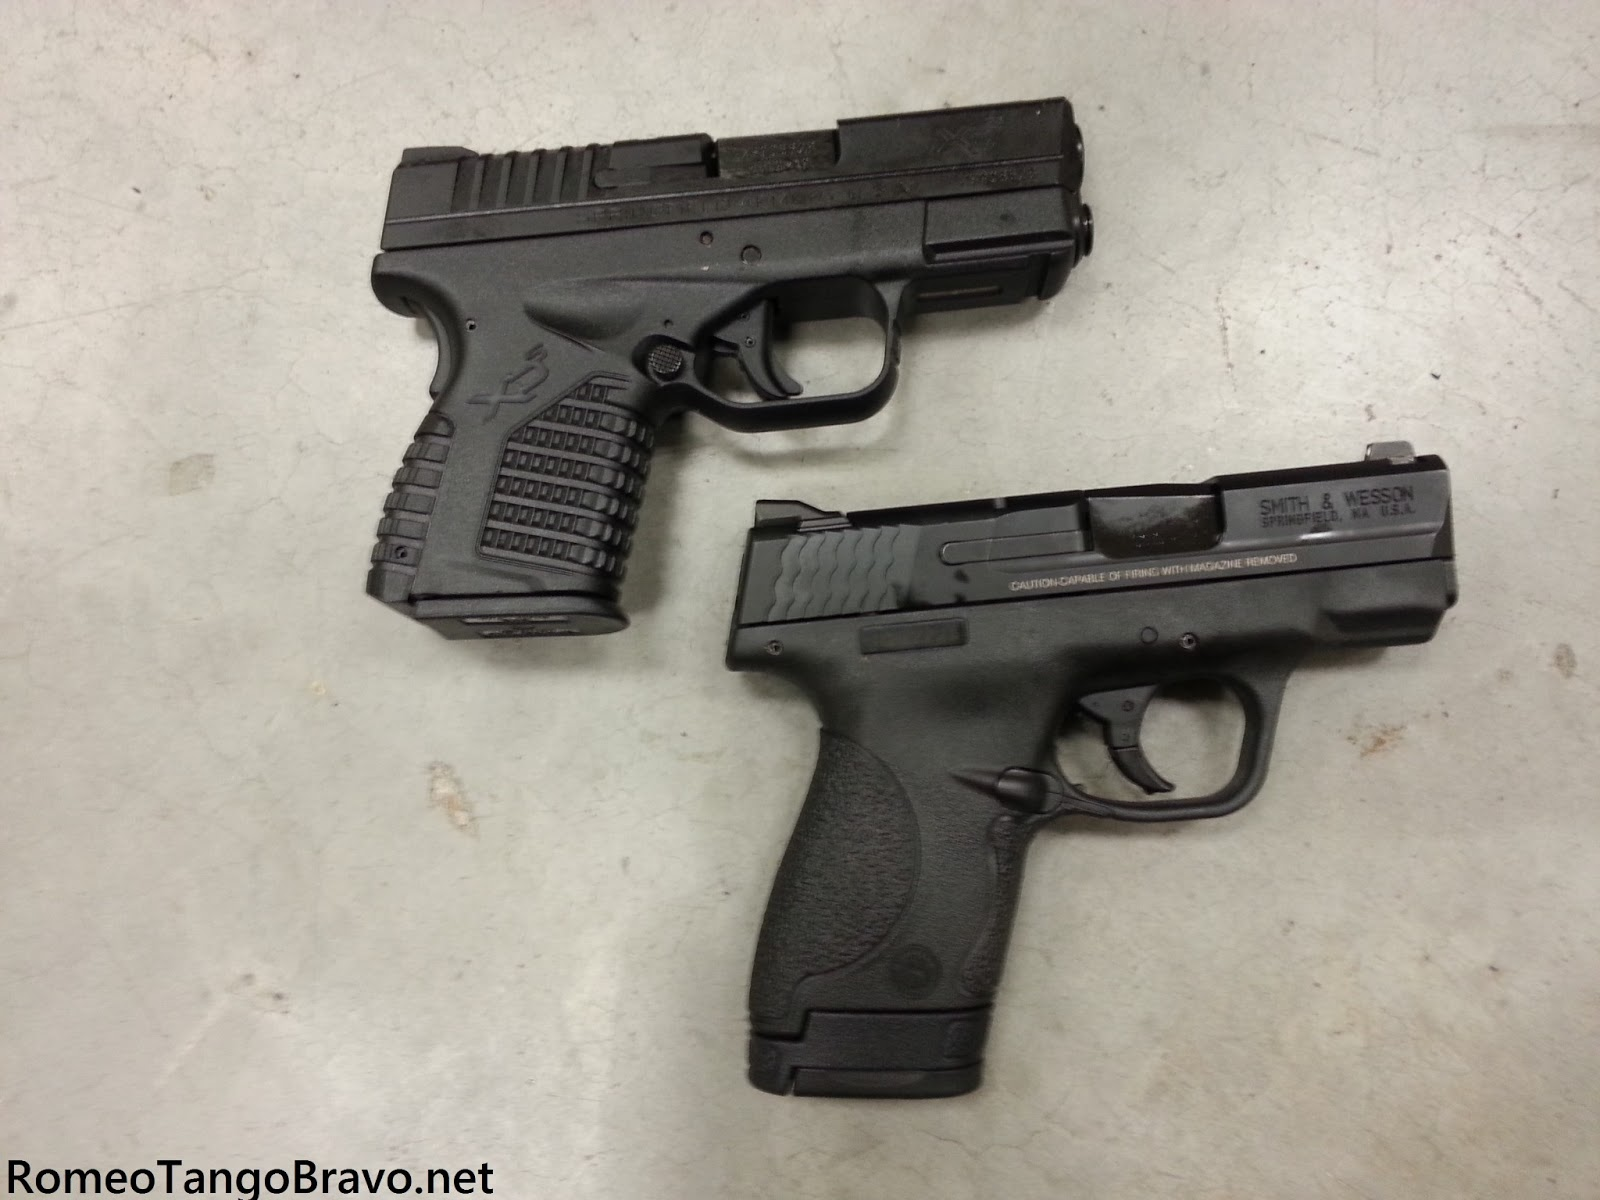 Xds Vs Shield Ro...M And P Shield Vs Xds